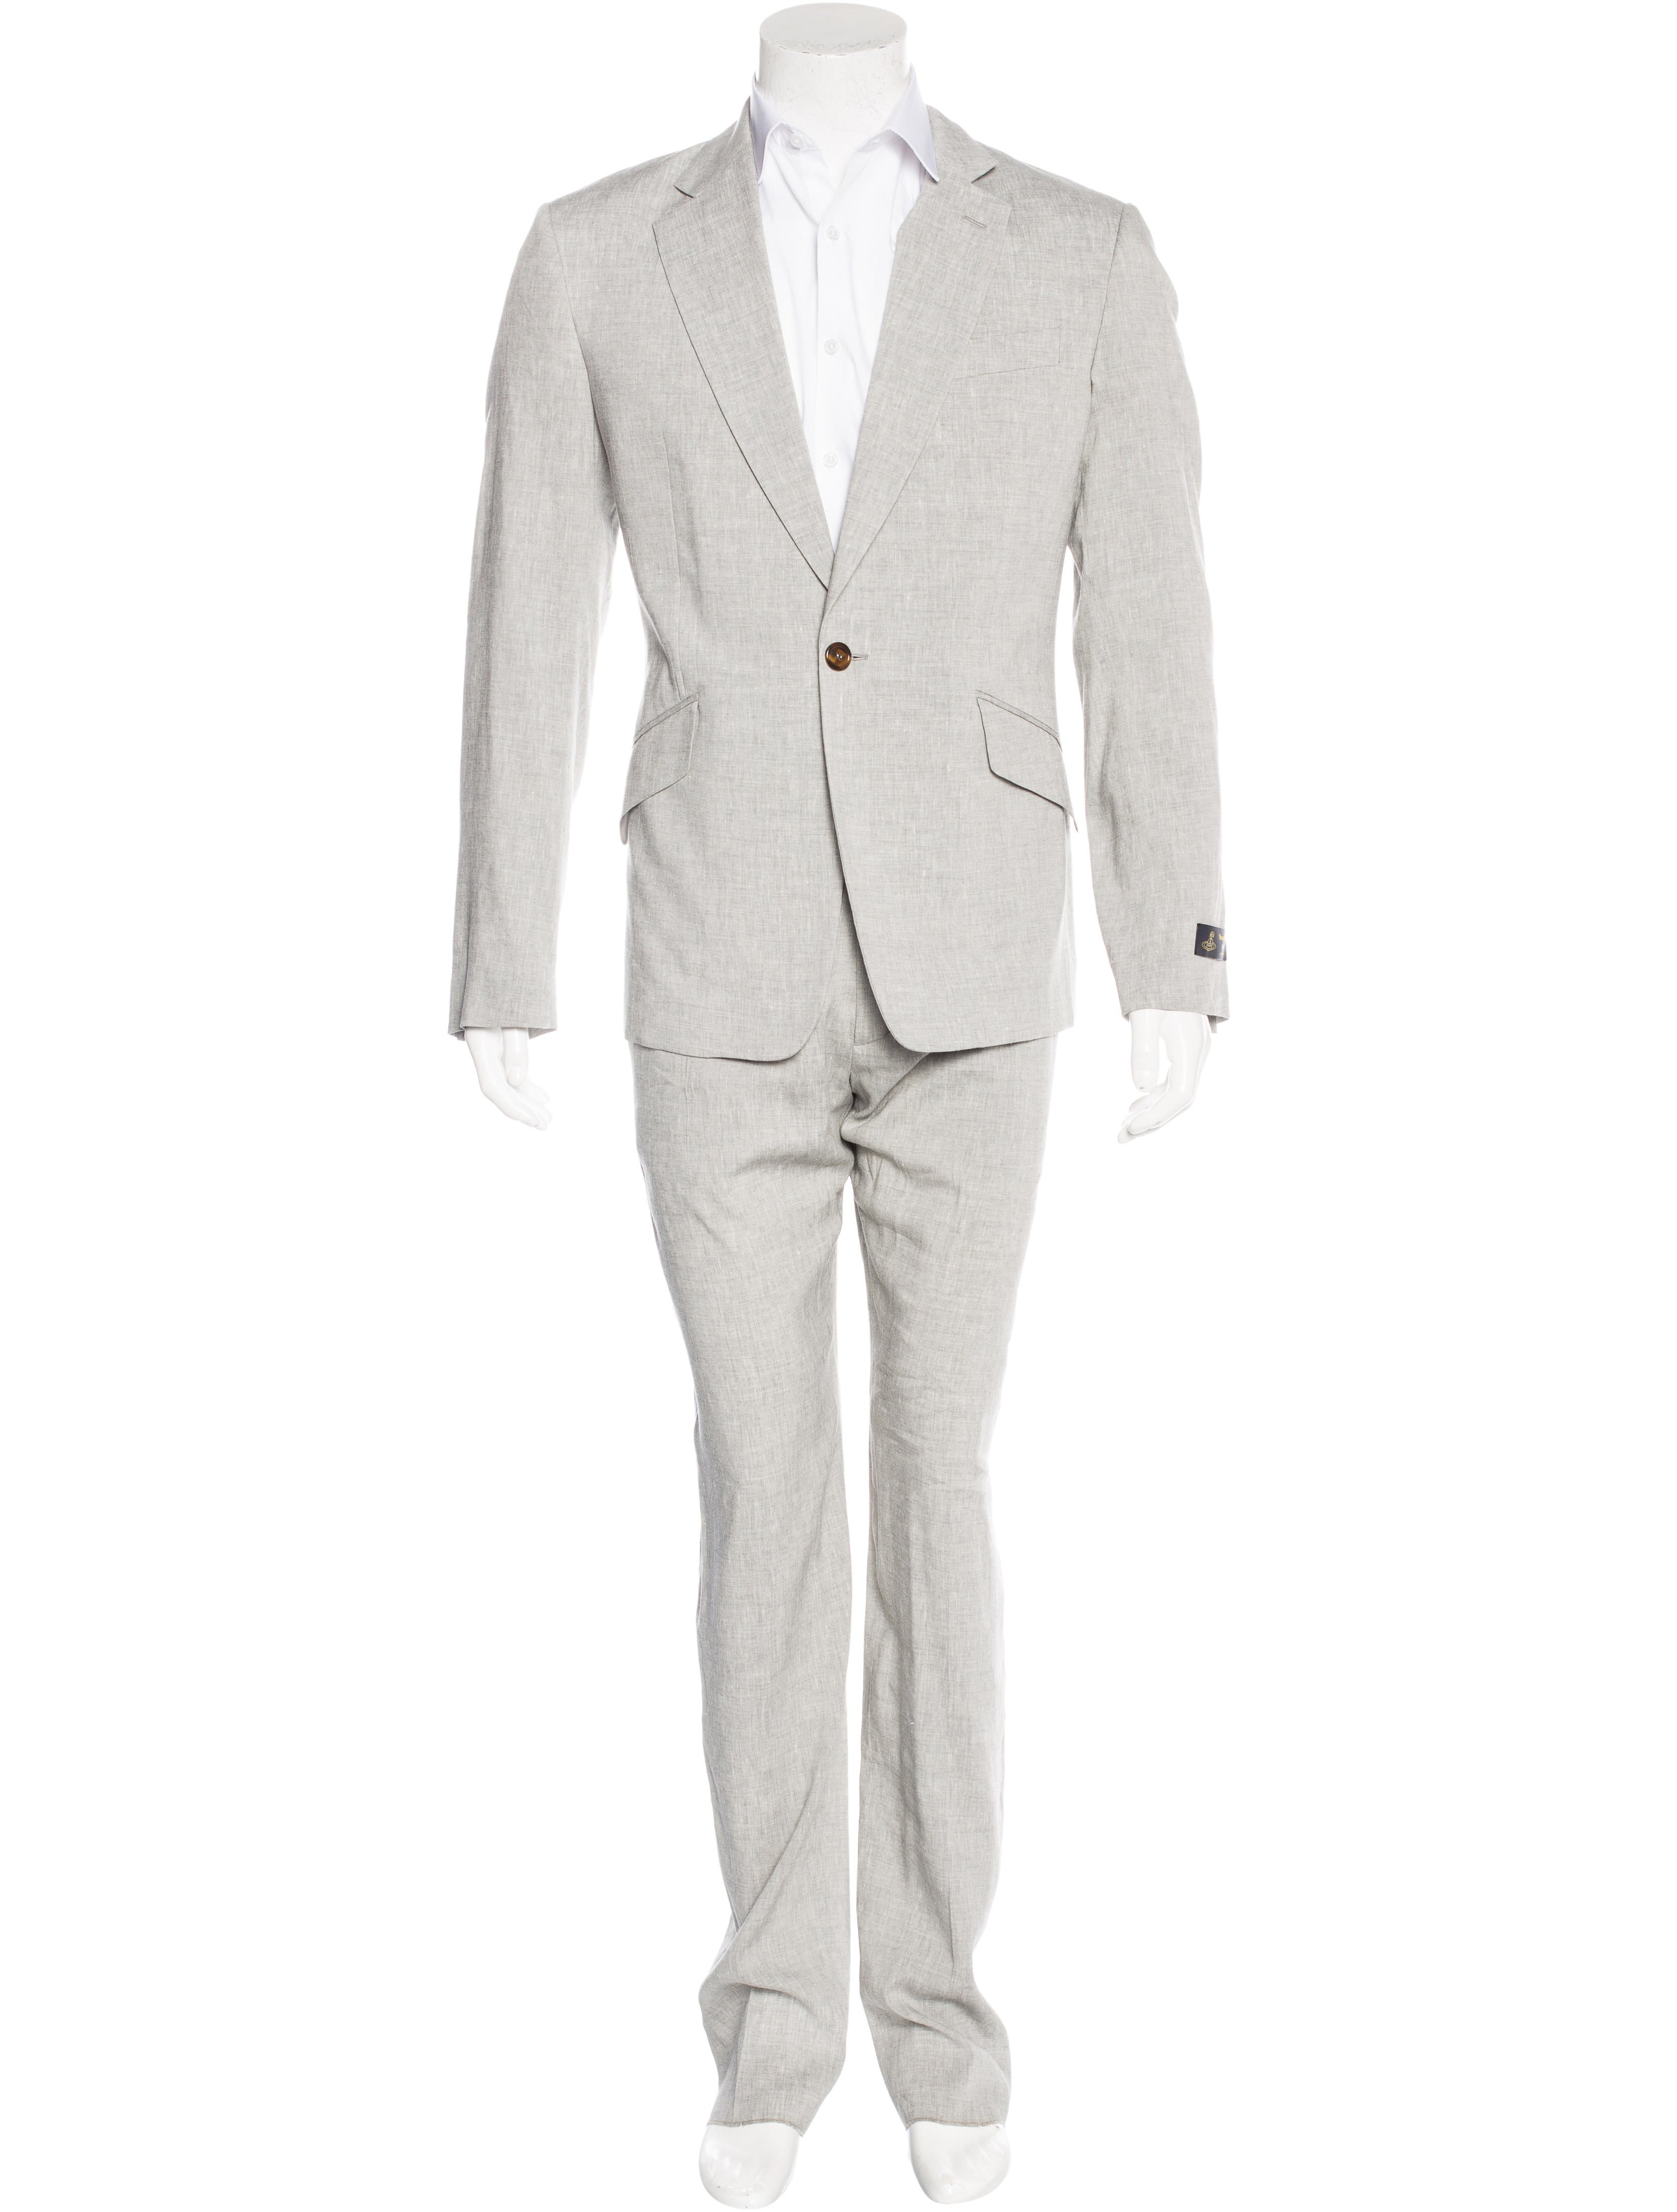 Shop Linen & Linen Blend Men's Suits and get free shipping w/minimum purchase! Macy's Presents: The Edit - A curated mix of fashion and inspiration Check It Out Free Shipping with $99 purchase + Free Store Pickup.